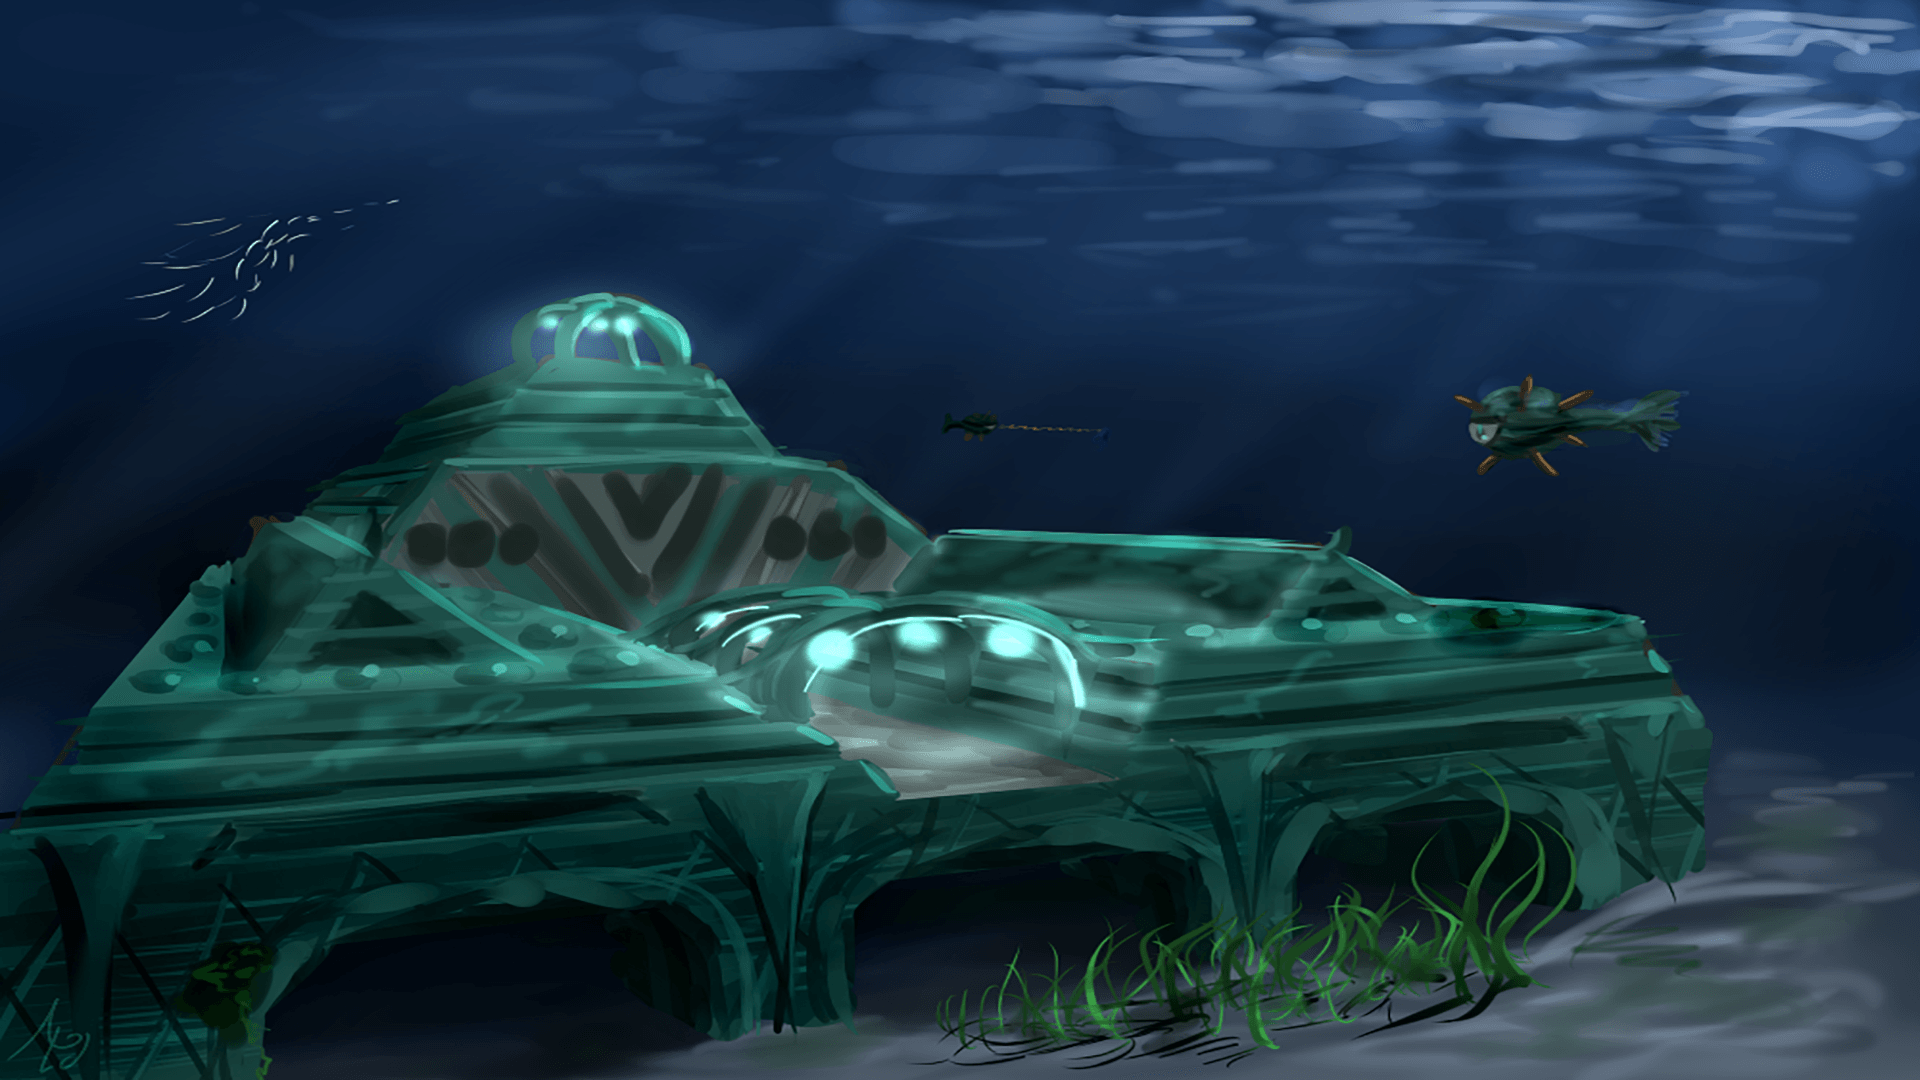 minecraft_ocean_monument__14w25a_snapshot__by_algoinde-d7trjzx